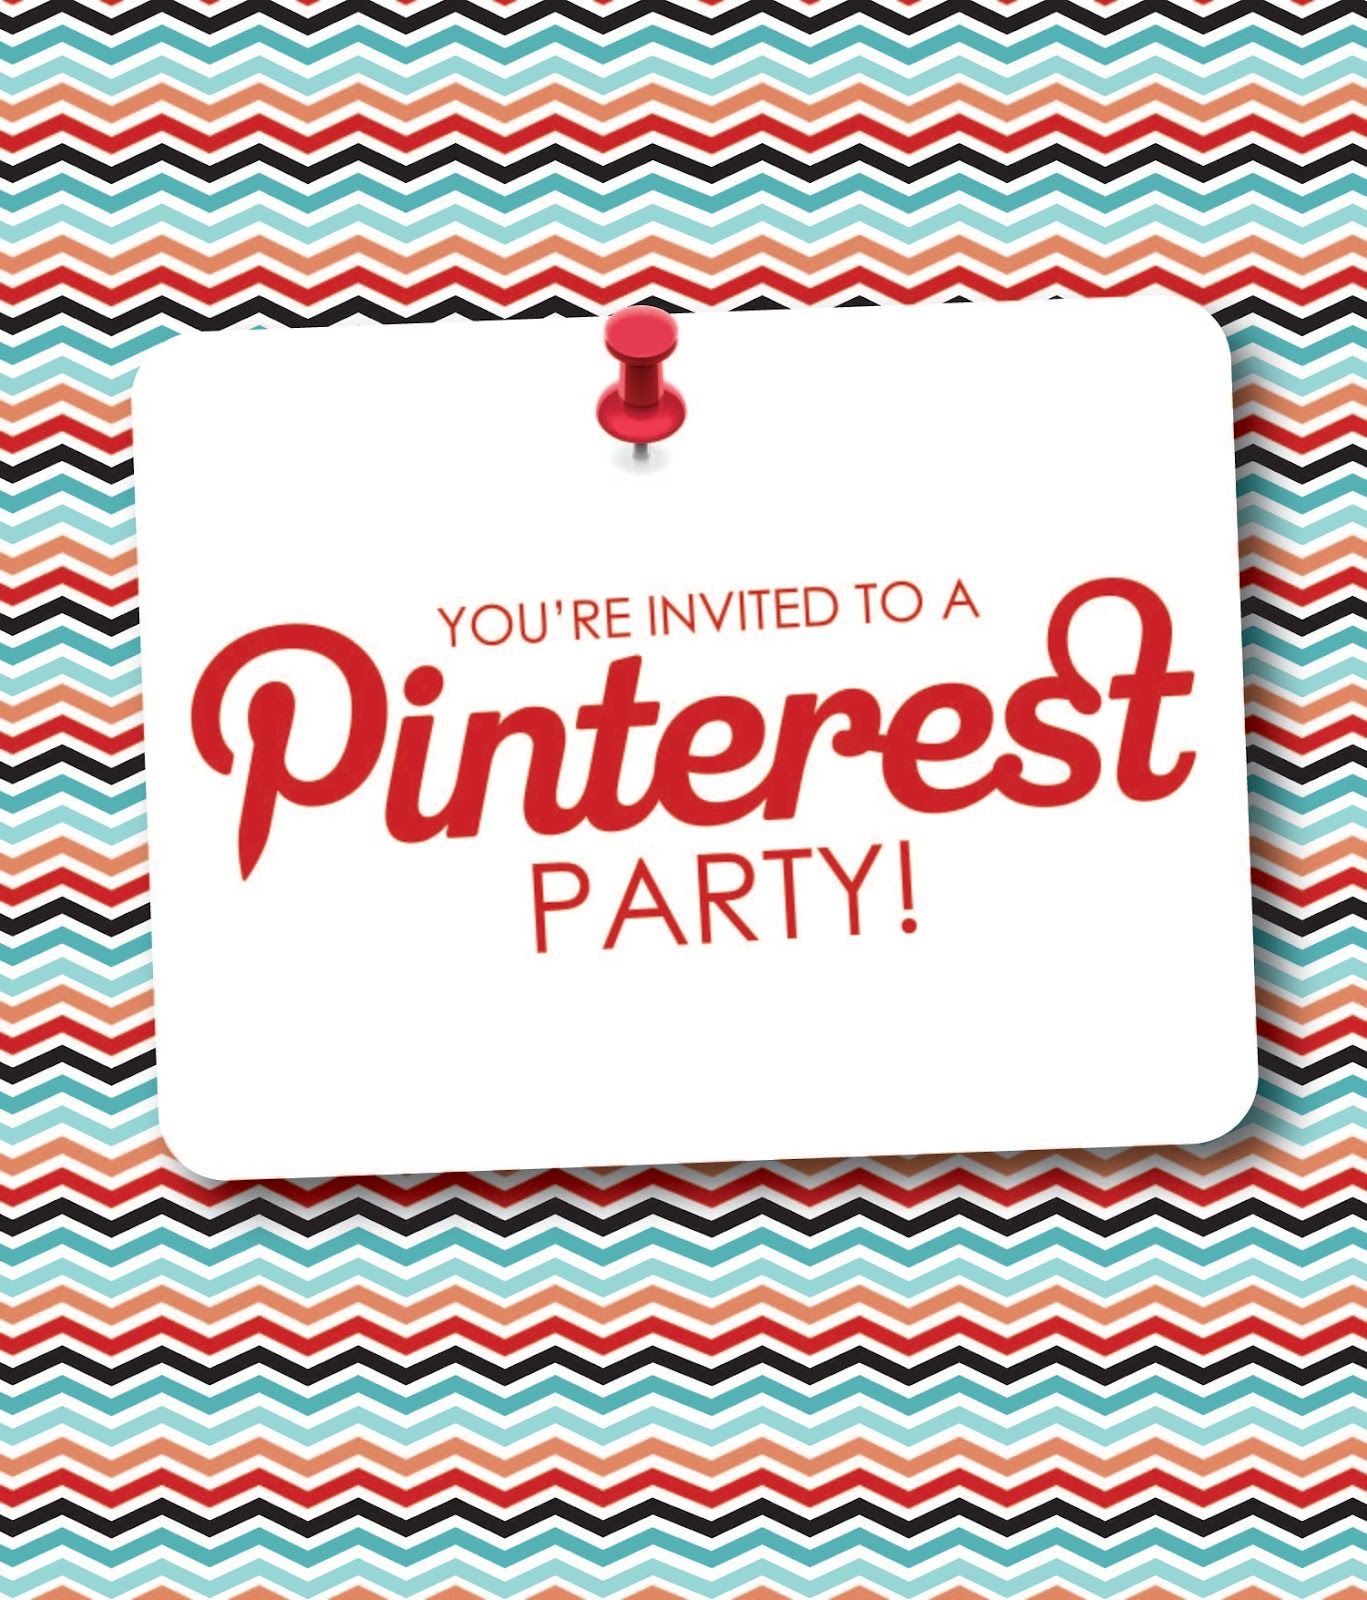 Plan A Theme Party On Pintrest Click Pic For Ideas